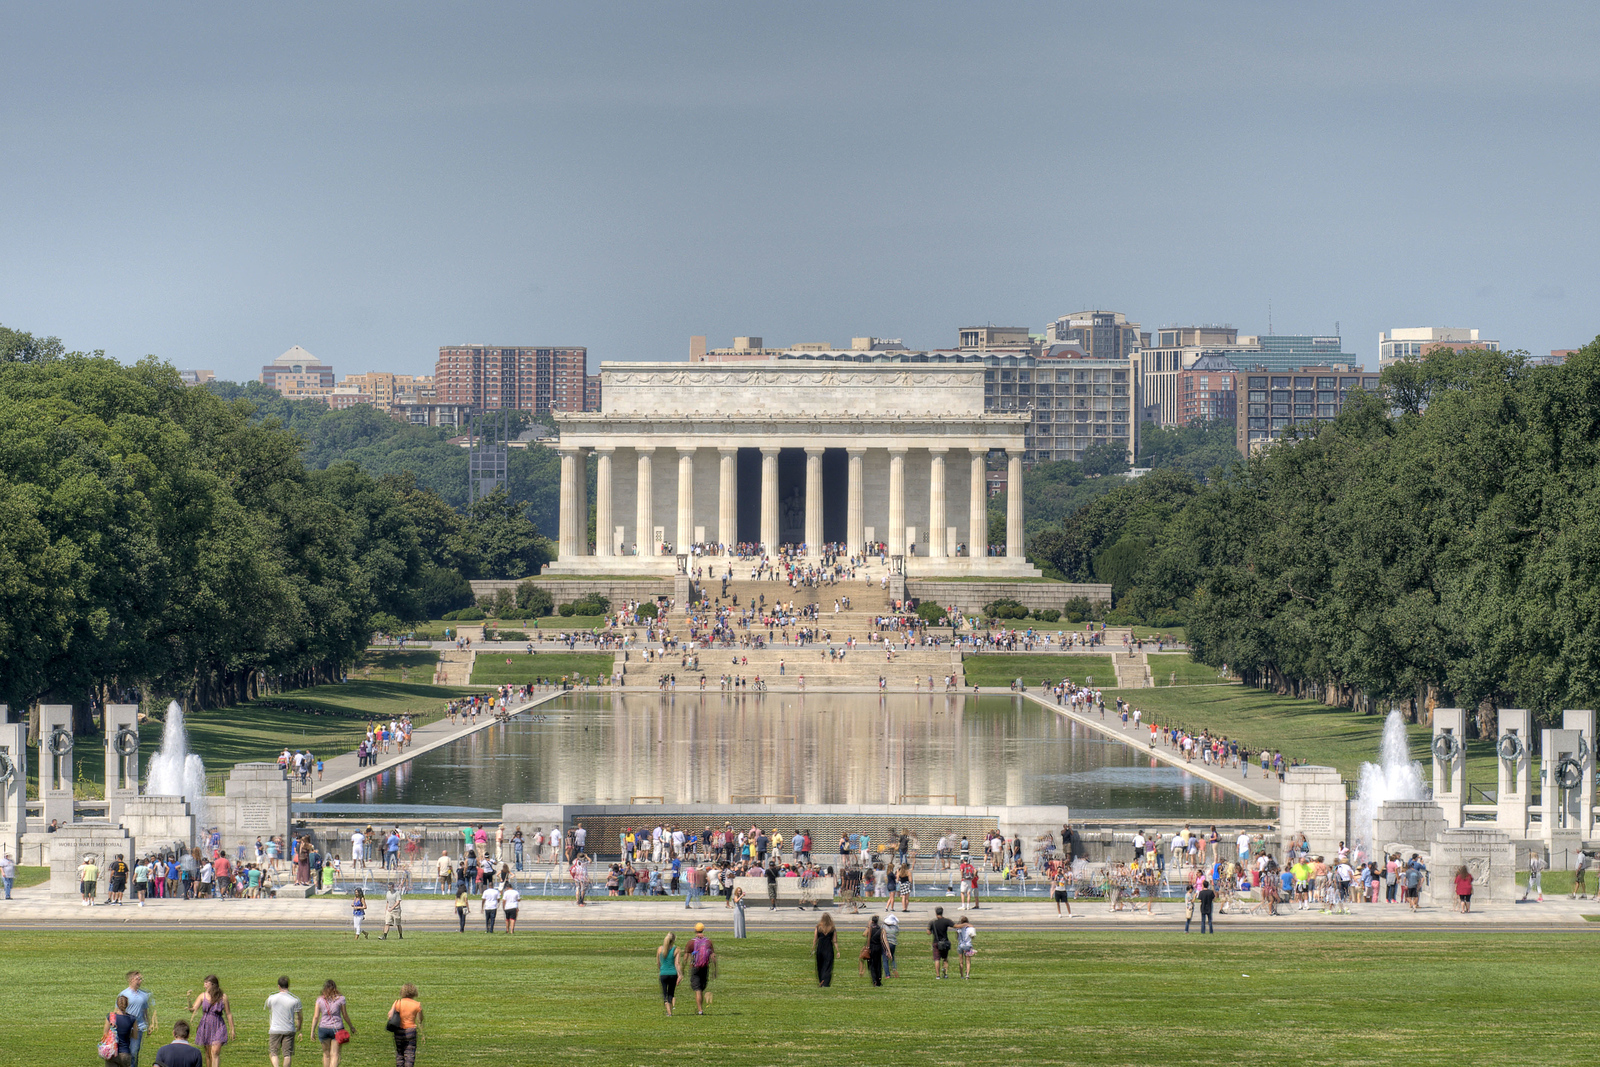 Hundreds of people walk the lawn and explore the National WWII Memorial and Lincoln Memorial in Washington, DC, on Saturday, August 16, 2014. Copyright 2014 Jason Barnette